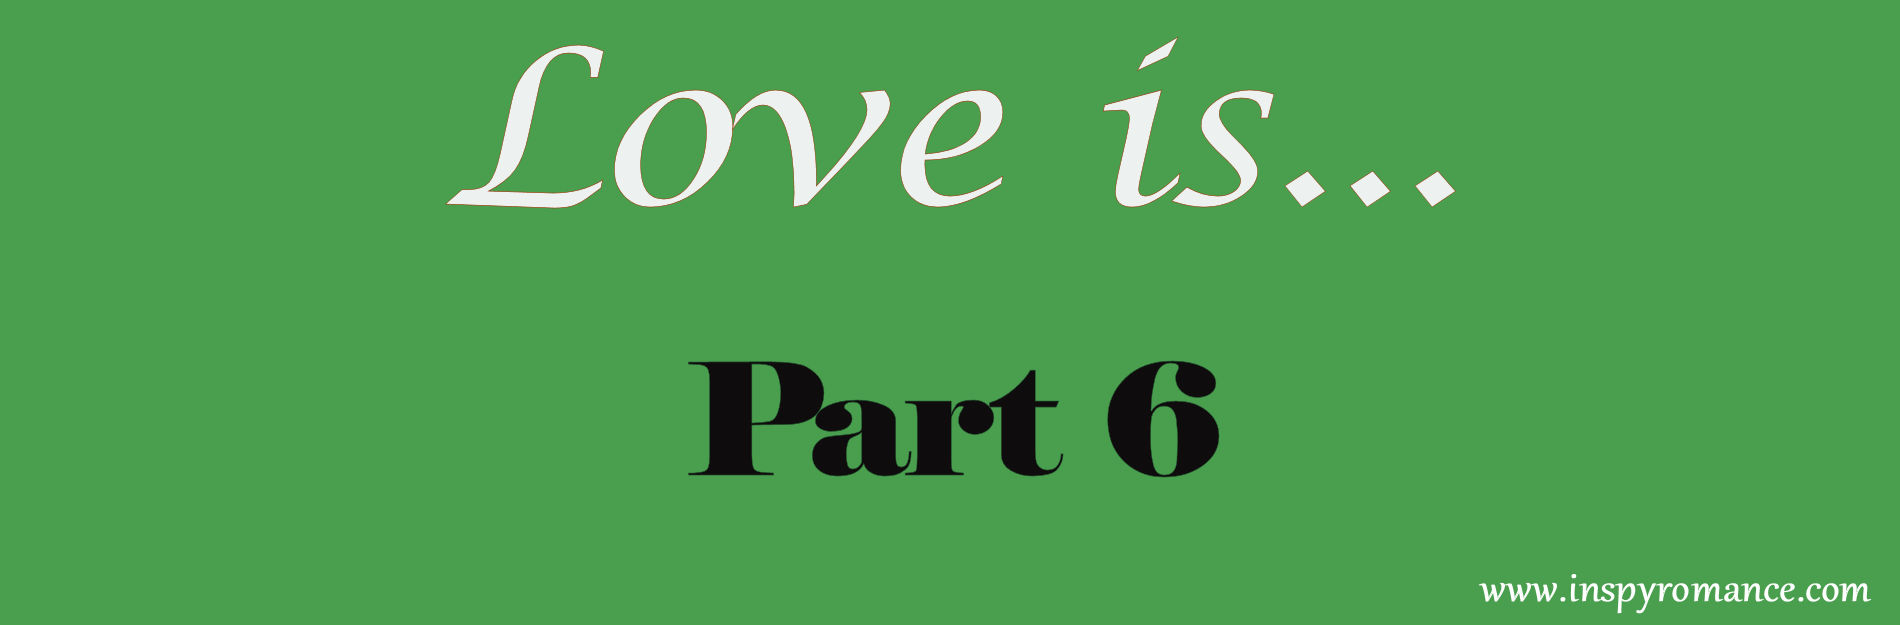 love is part 6-2